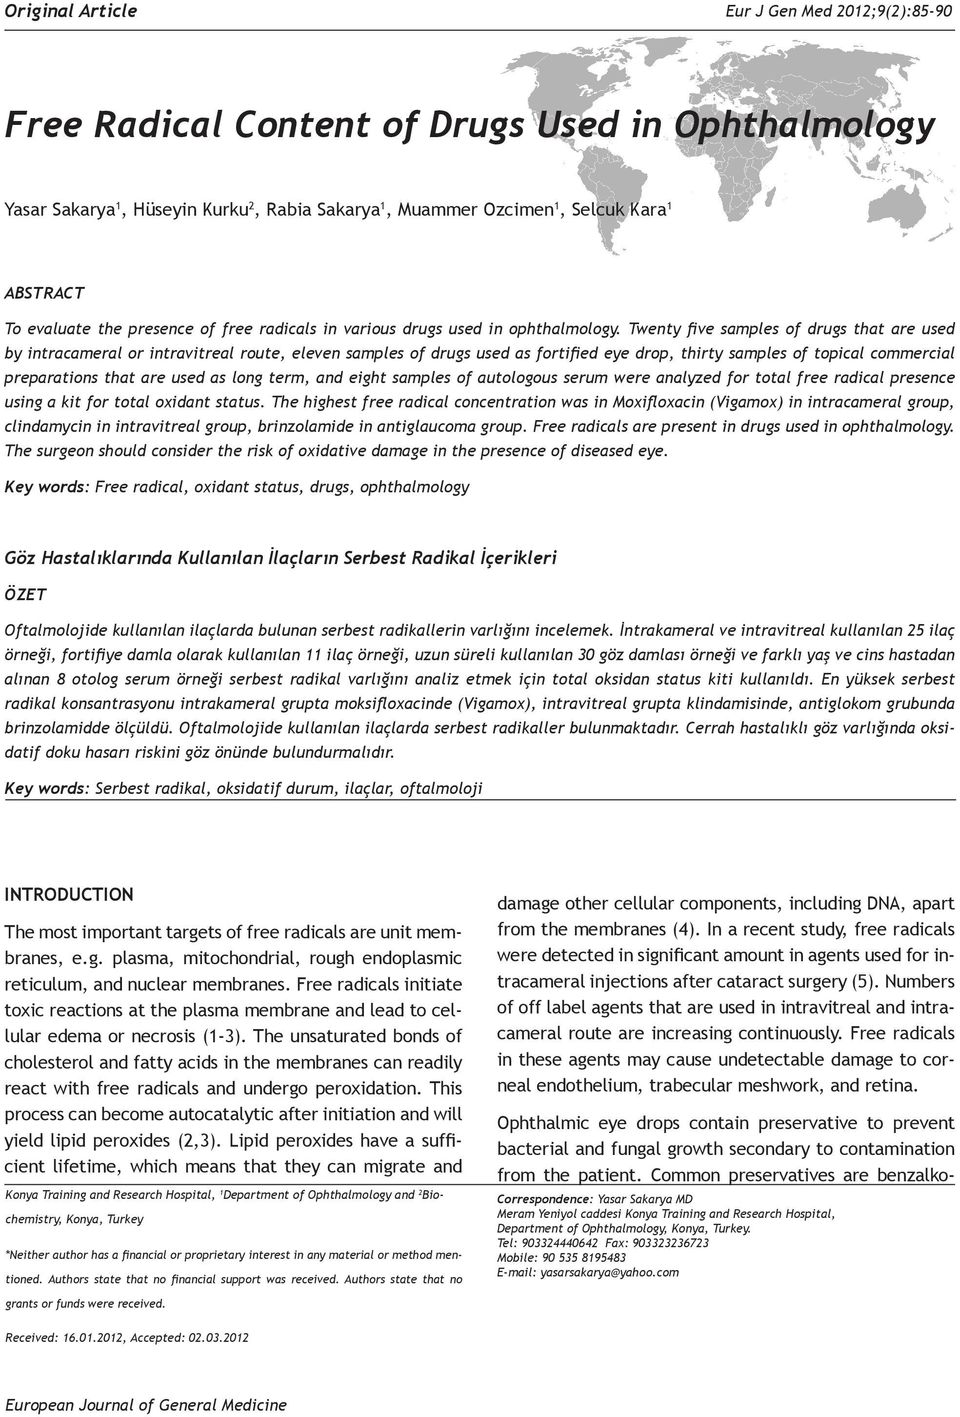 Free Radical Content of Drugs Used in Ophthalmology - PDF